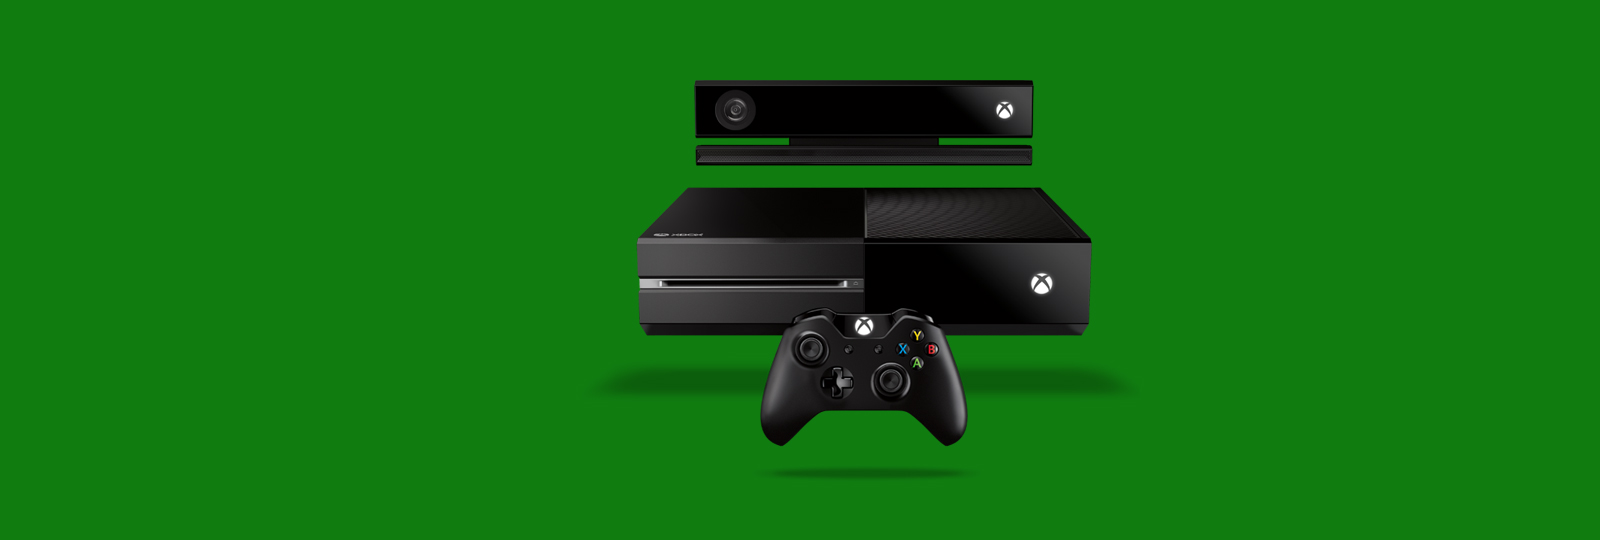 Vorstellung: Xbox One Das All-in-One Entertainment System.